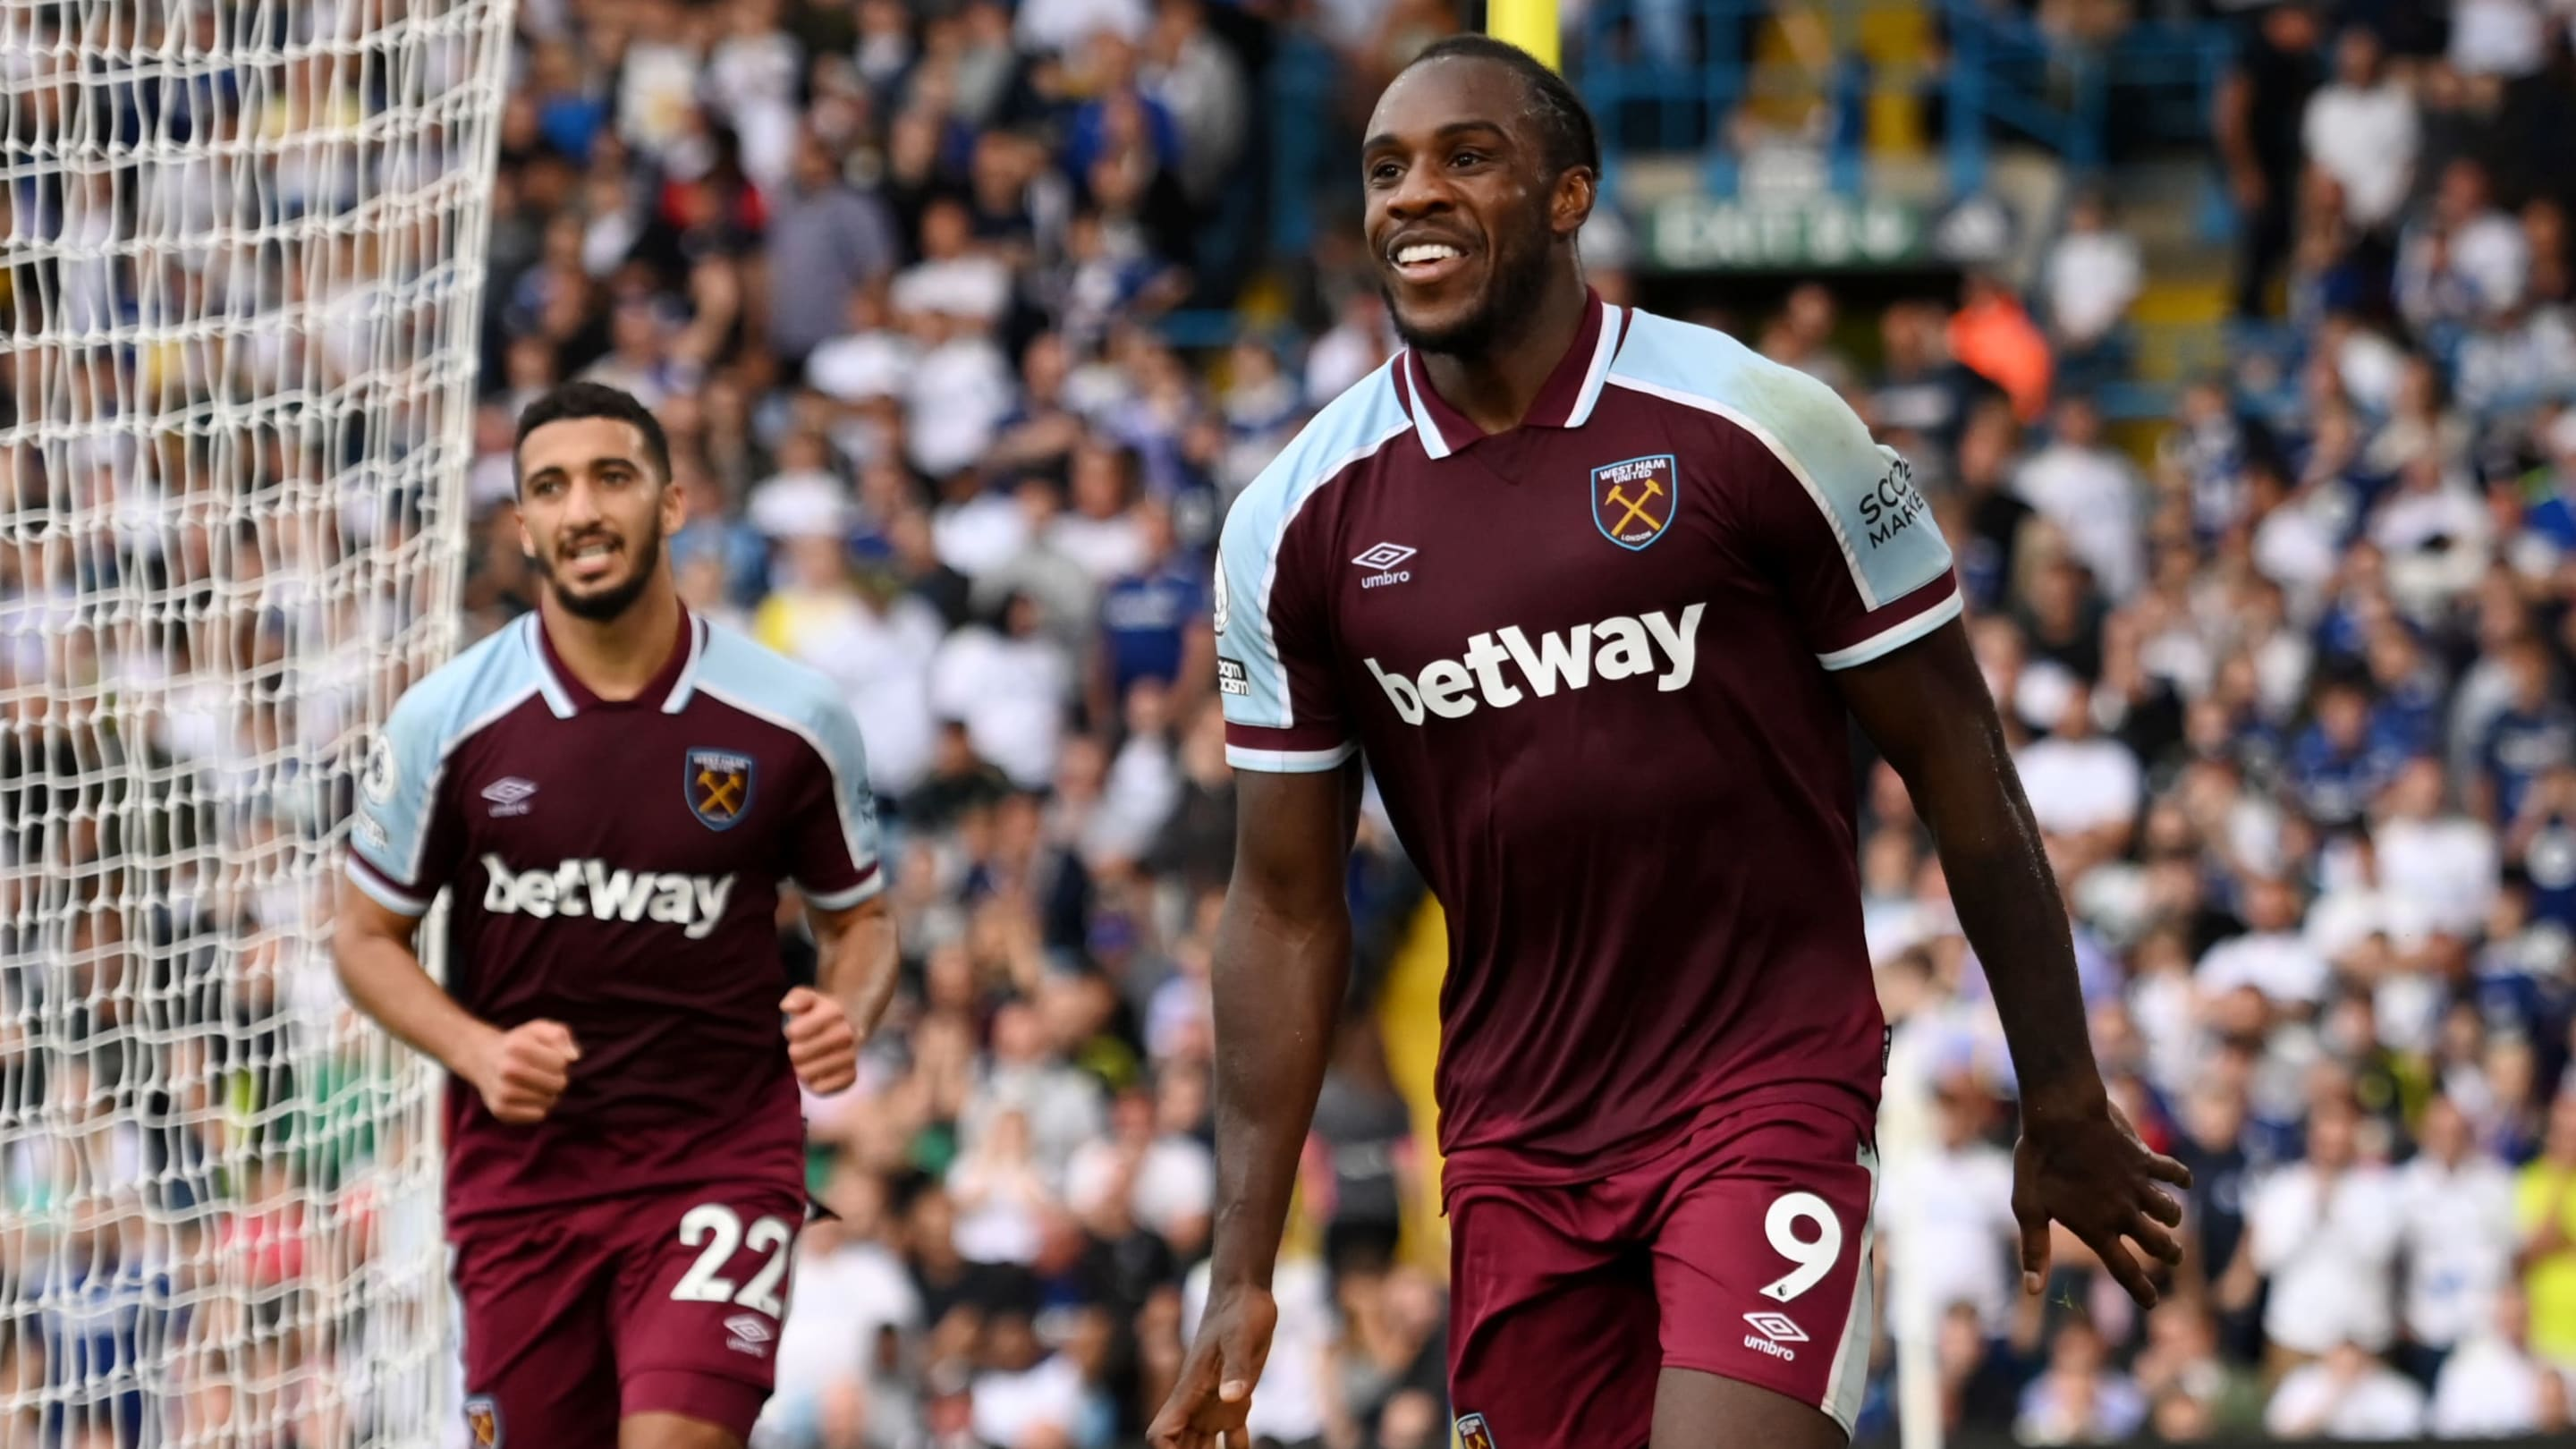 Leeds 1-2 West Ham: Player ratings as Hammers win it at the death